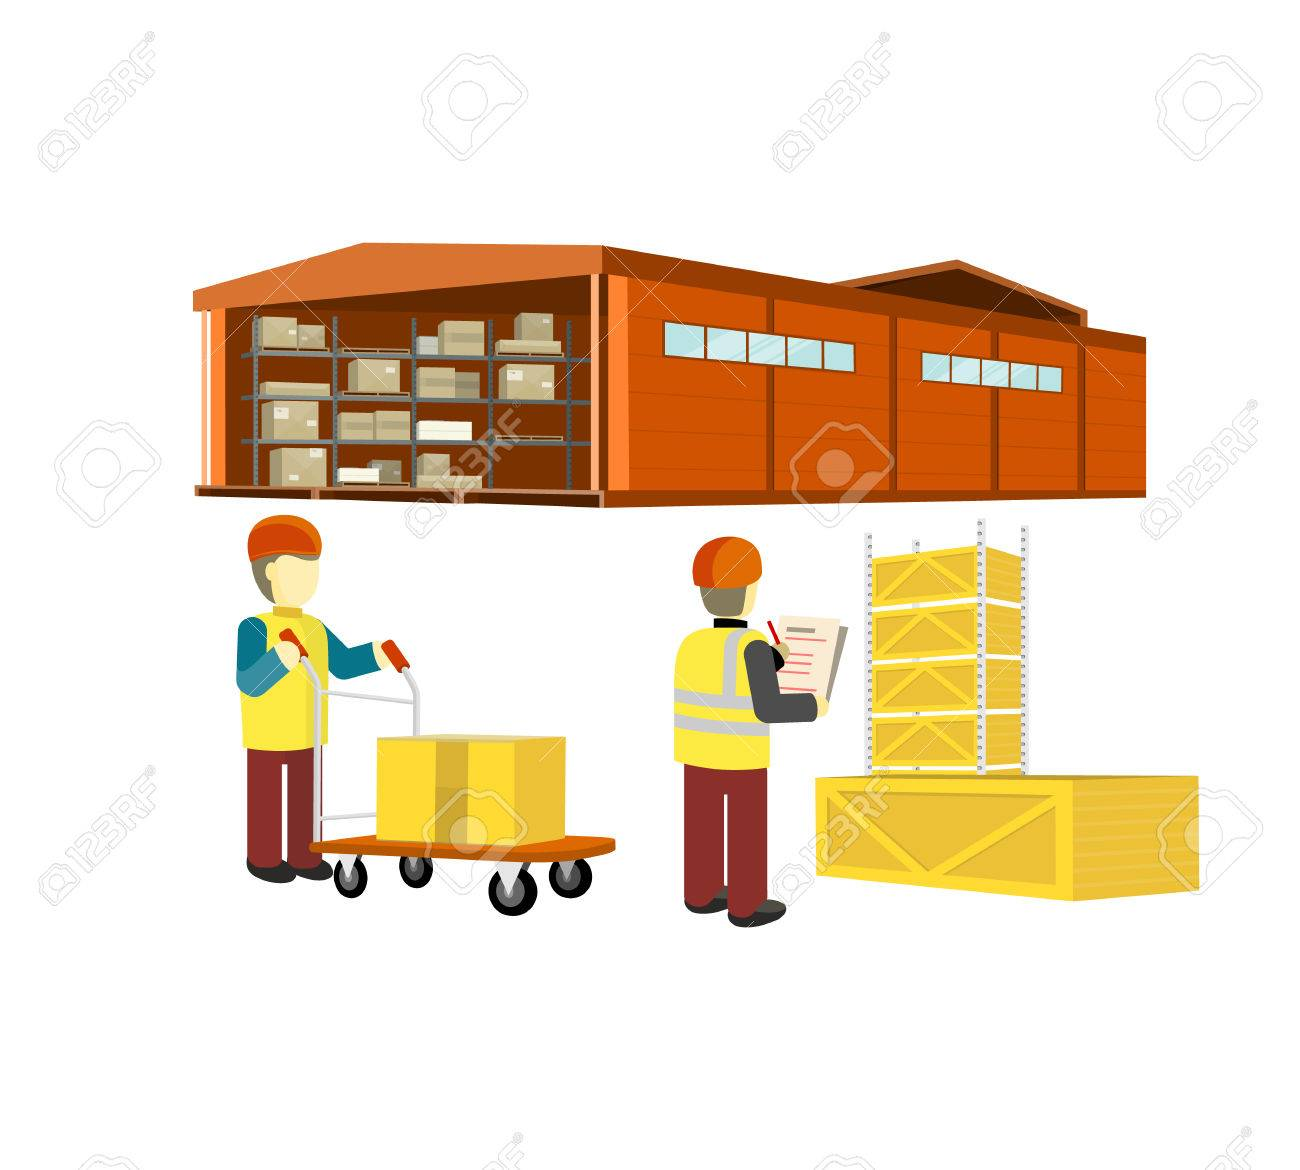 Warehouse picture clipart image Warehouse clipart factory man - 145 transparent clip arts, images ... image